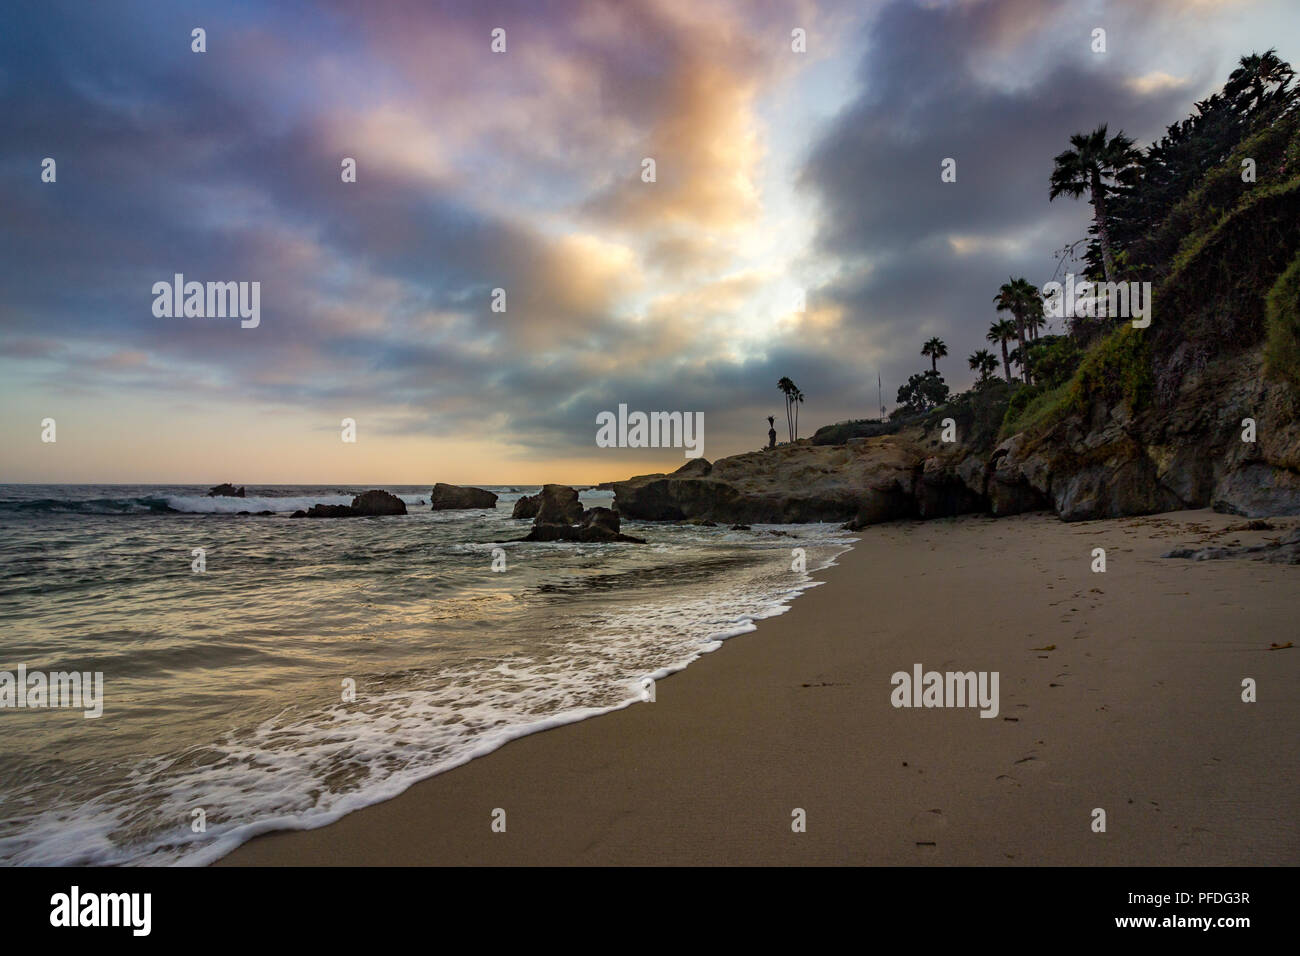 Stunning coastal view of a cloudy sky with waves crashing onto the beach at sunset, Divers Cove, Laguna Beach, California Stock Photo